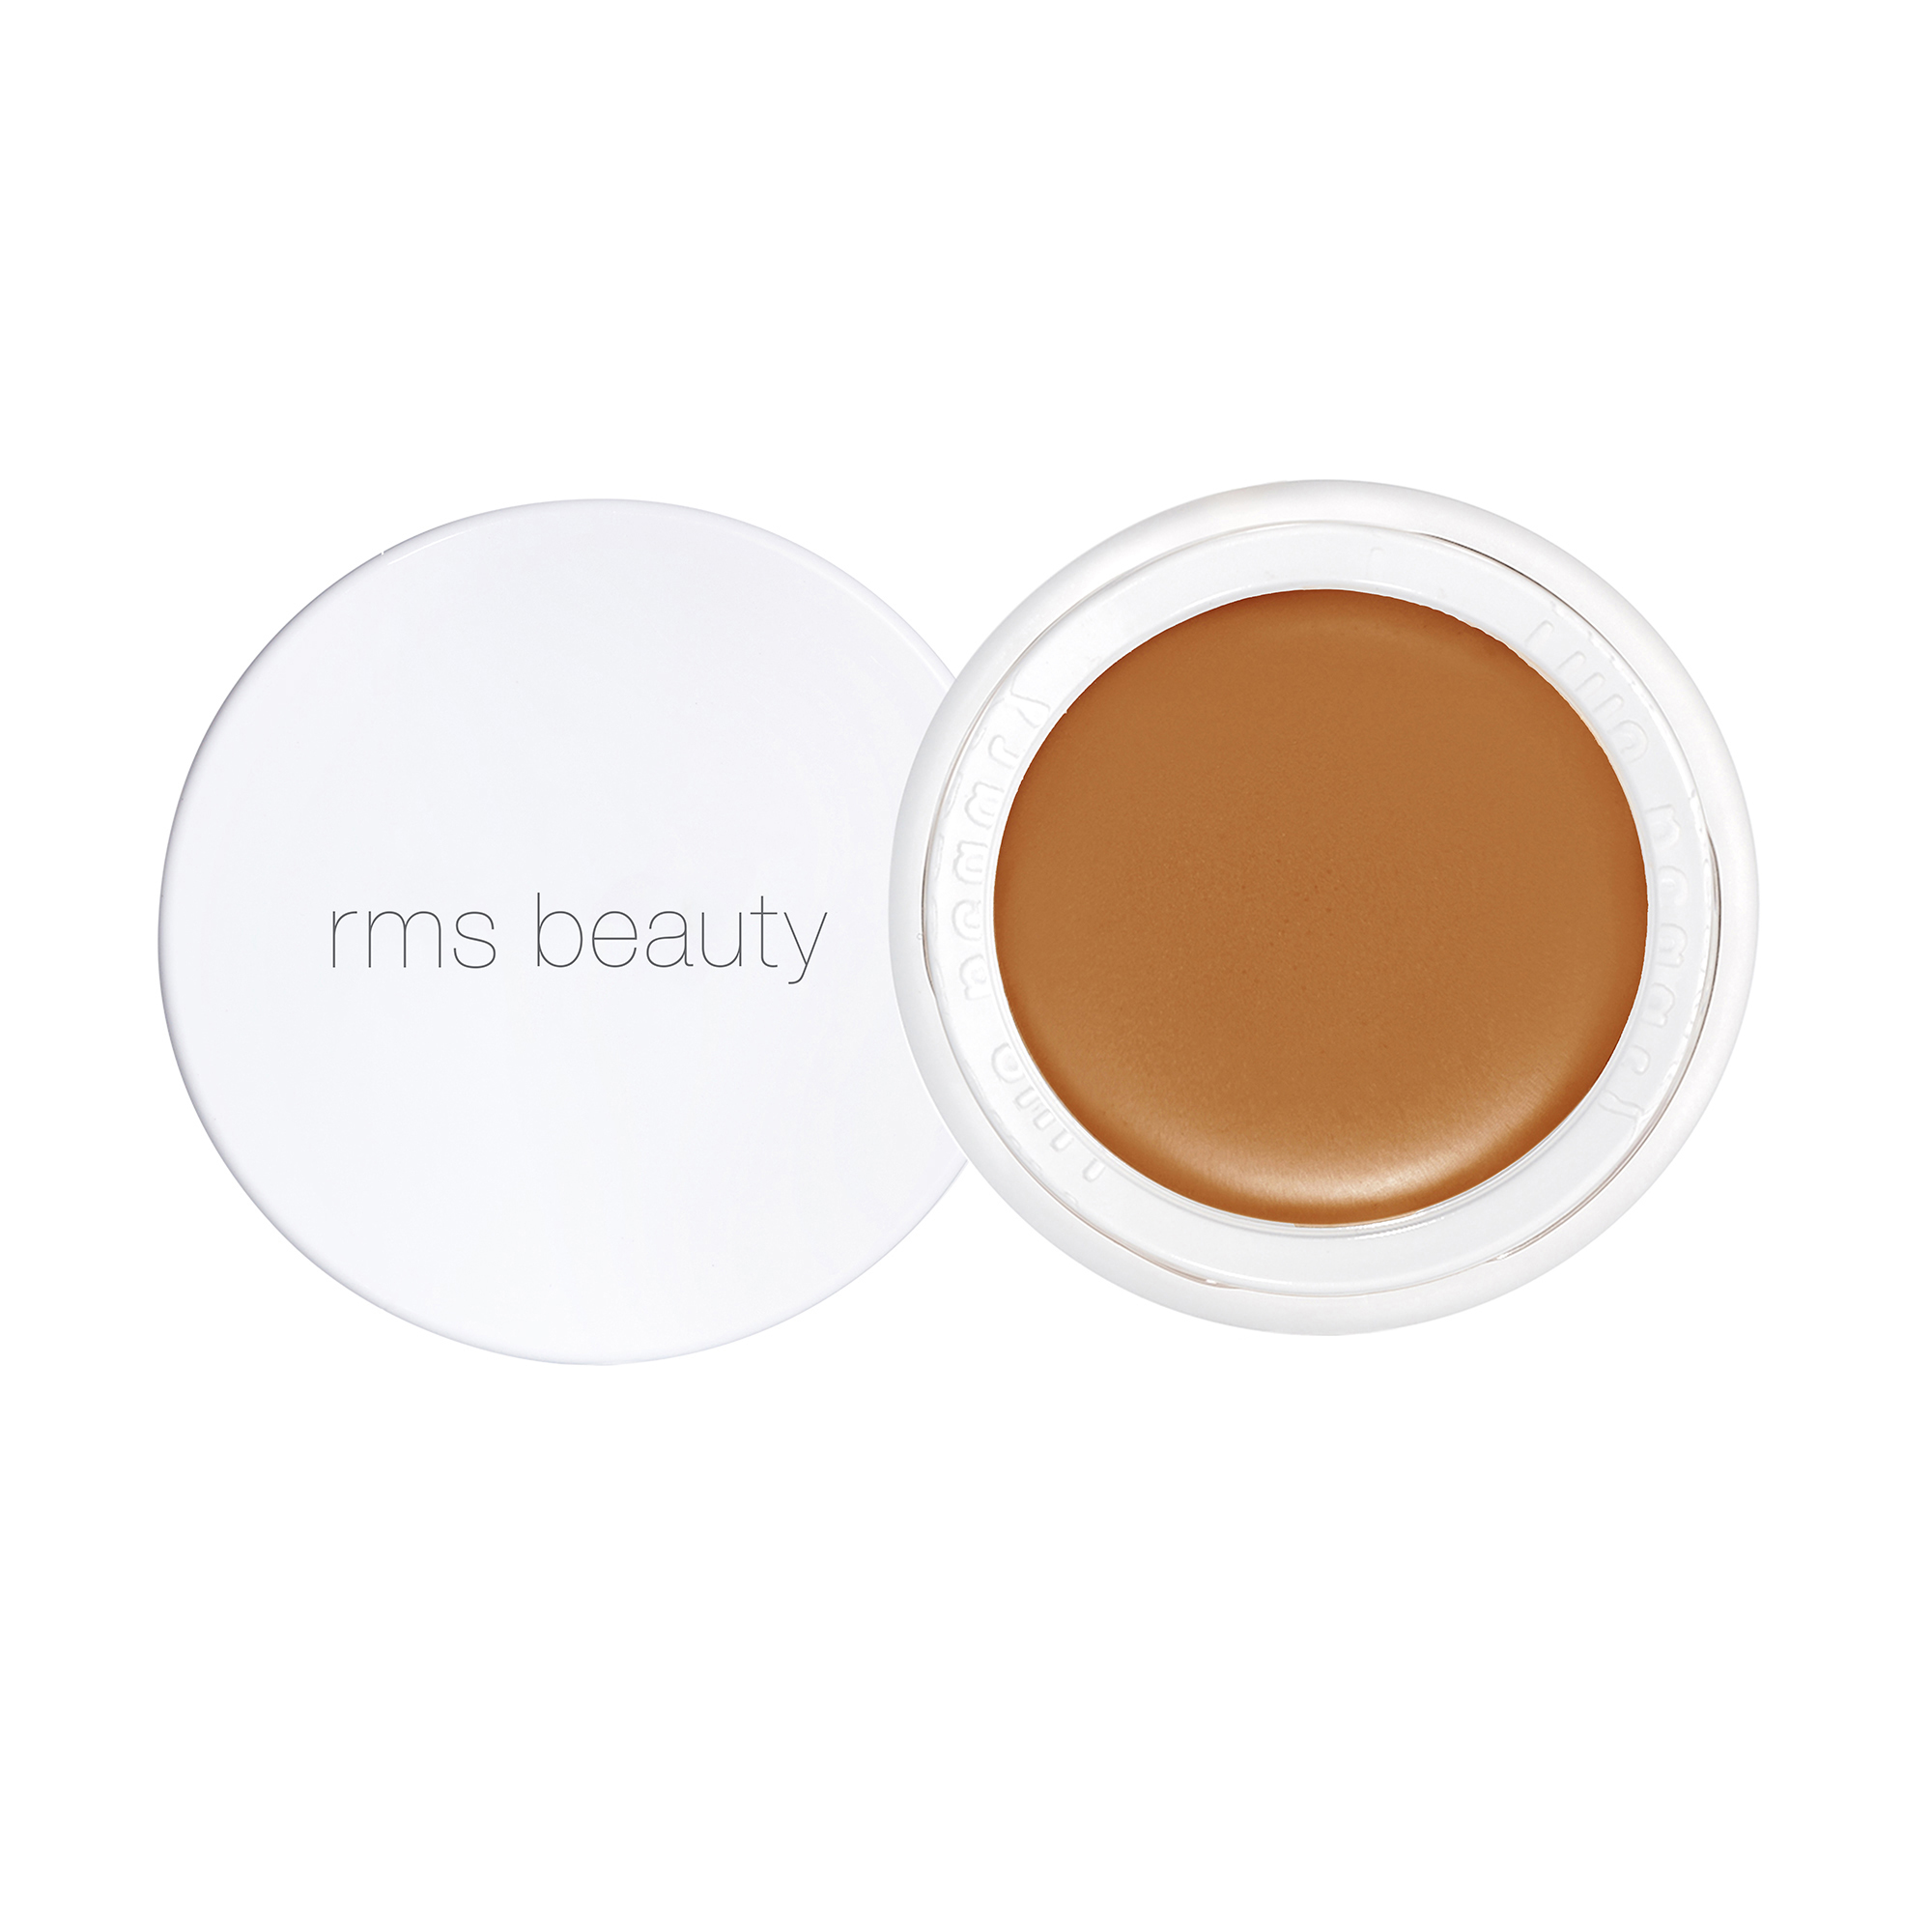 RMS  BEAUTY  КРЕМ КОНСИЛЕР ДЛЯ ЛИЦА  UN COVER-UP CREAM CONCEALER  77